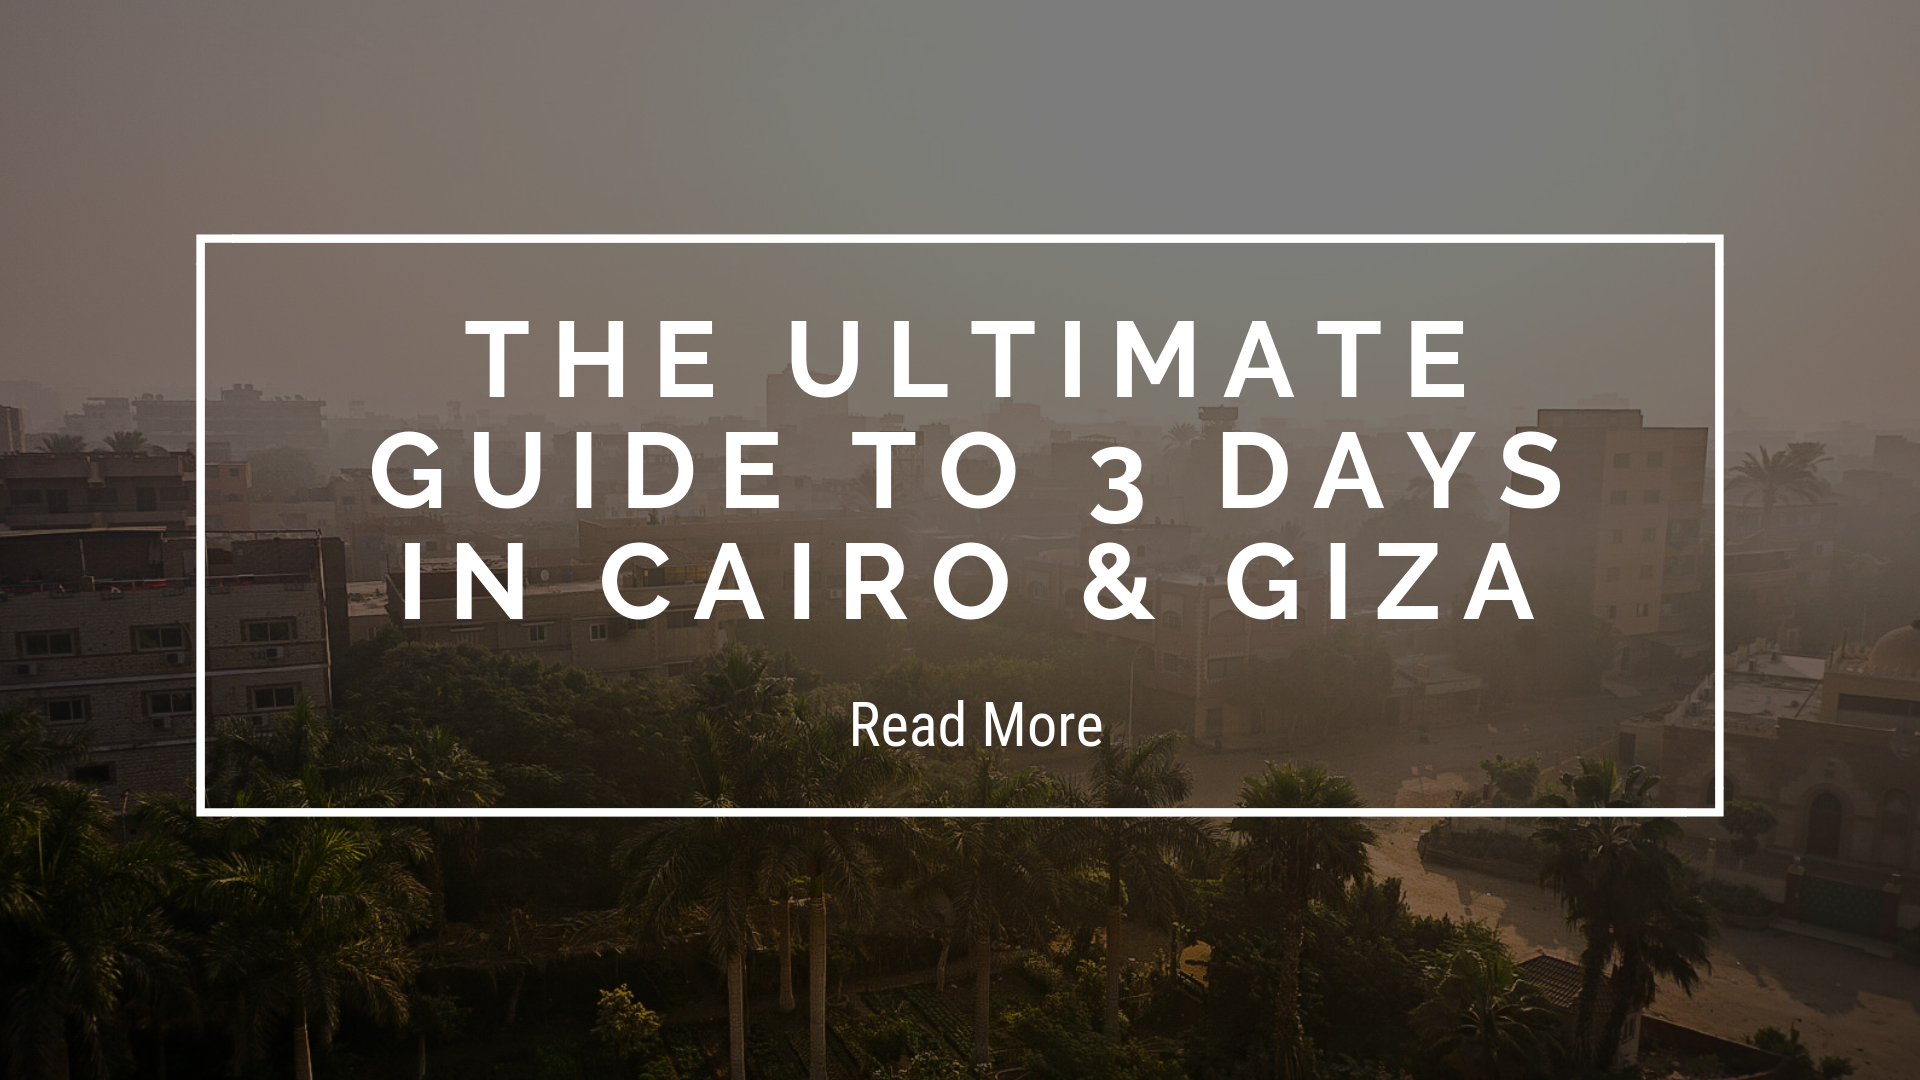 Ultimate Guide to 3 Days in Cairo & Giza